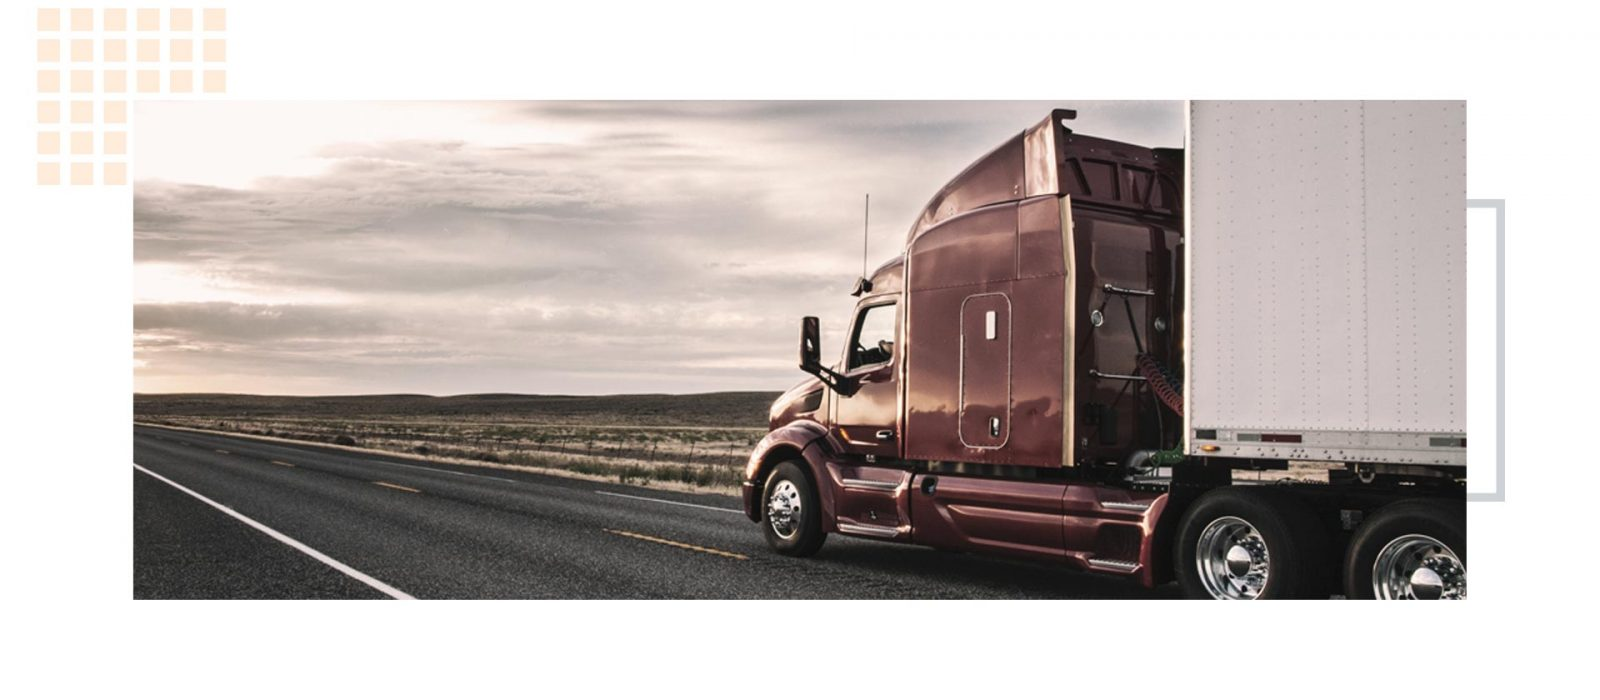 2020-addtl-cdl-courses-to-choose